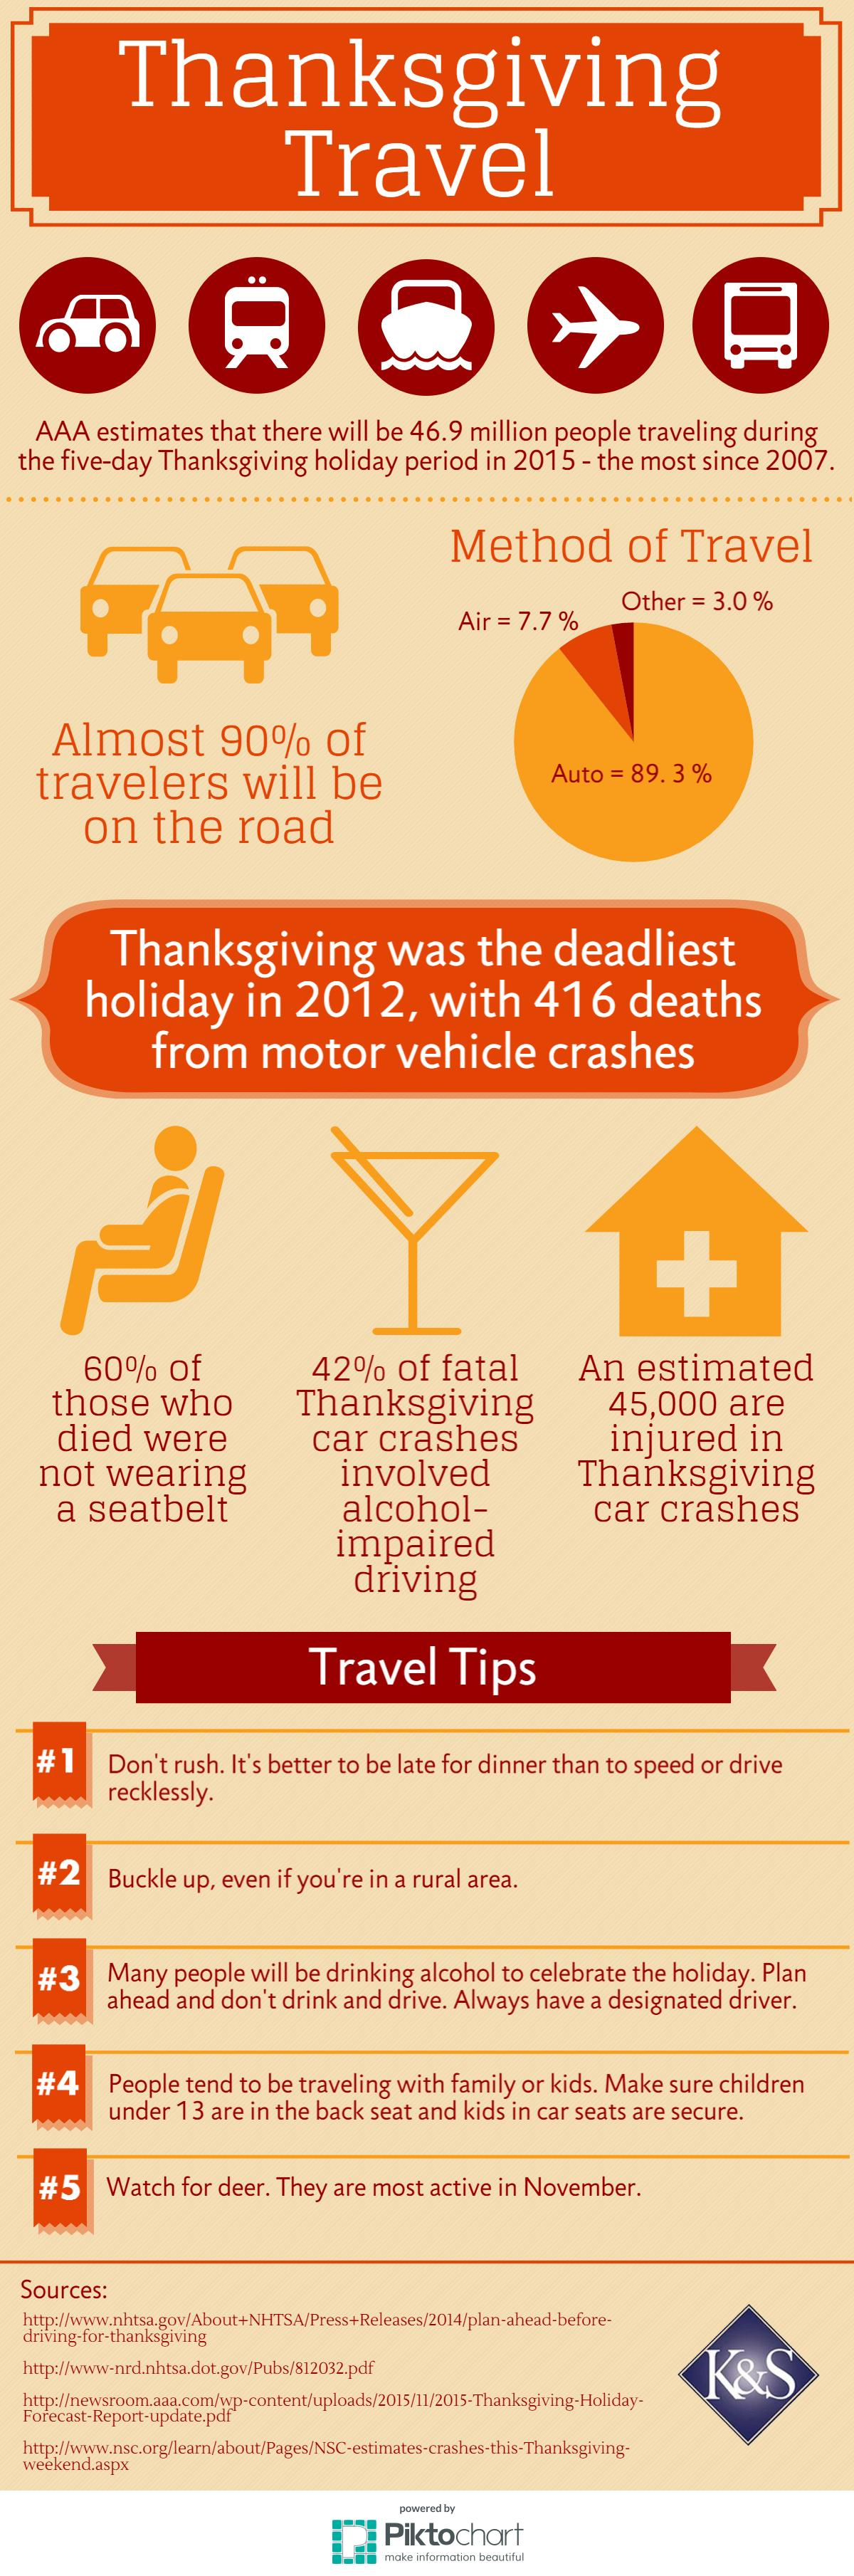 Thanksgiving traveling tips